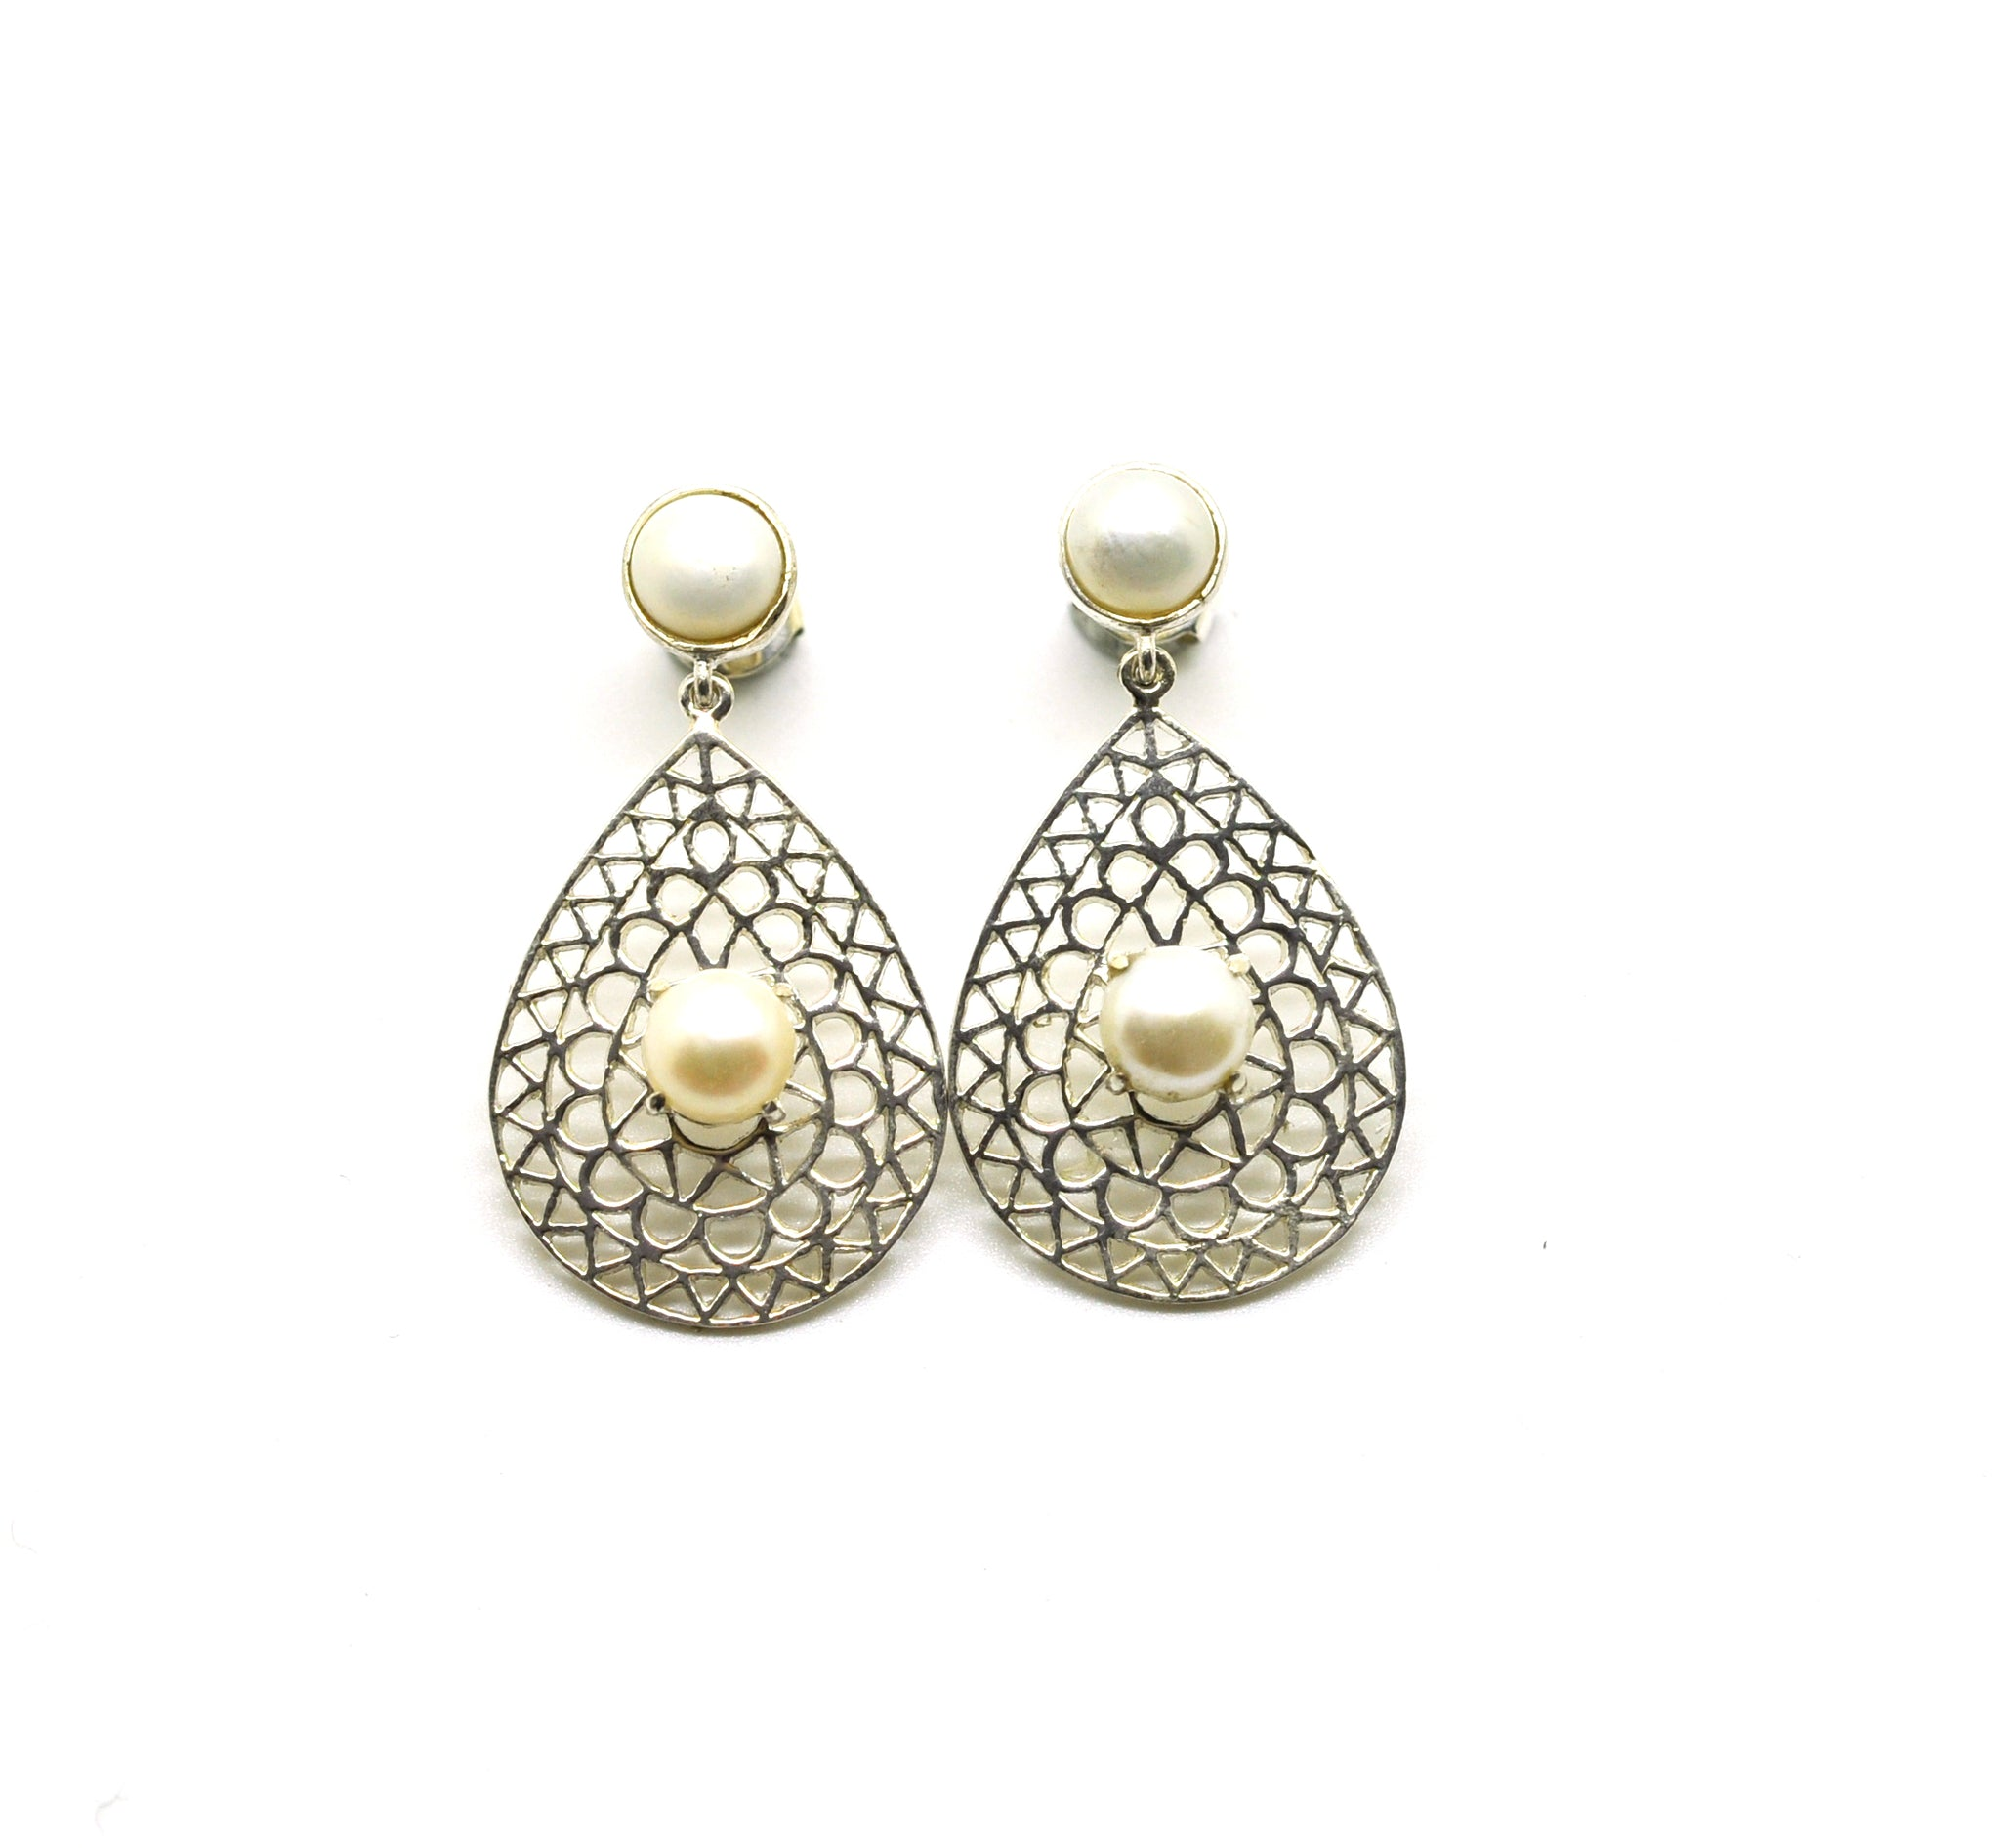 SOLD - ON SALE  Pearl filigree earring